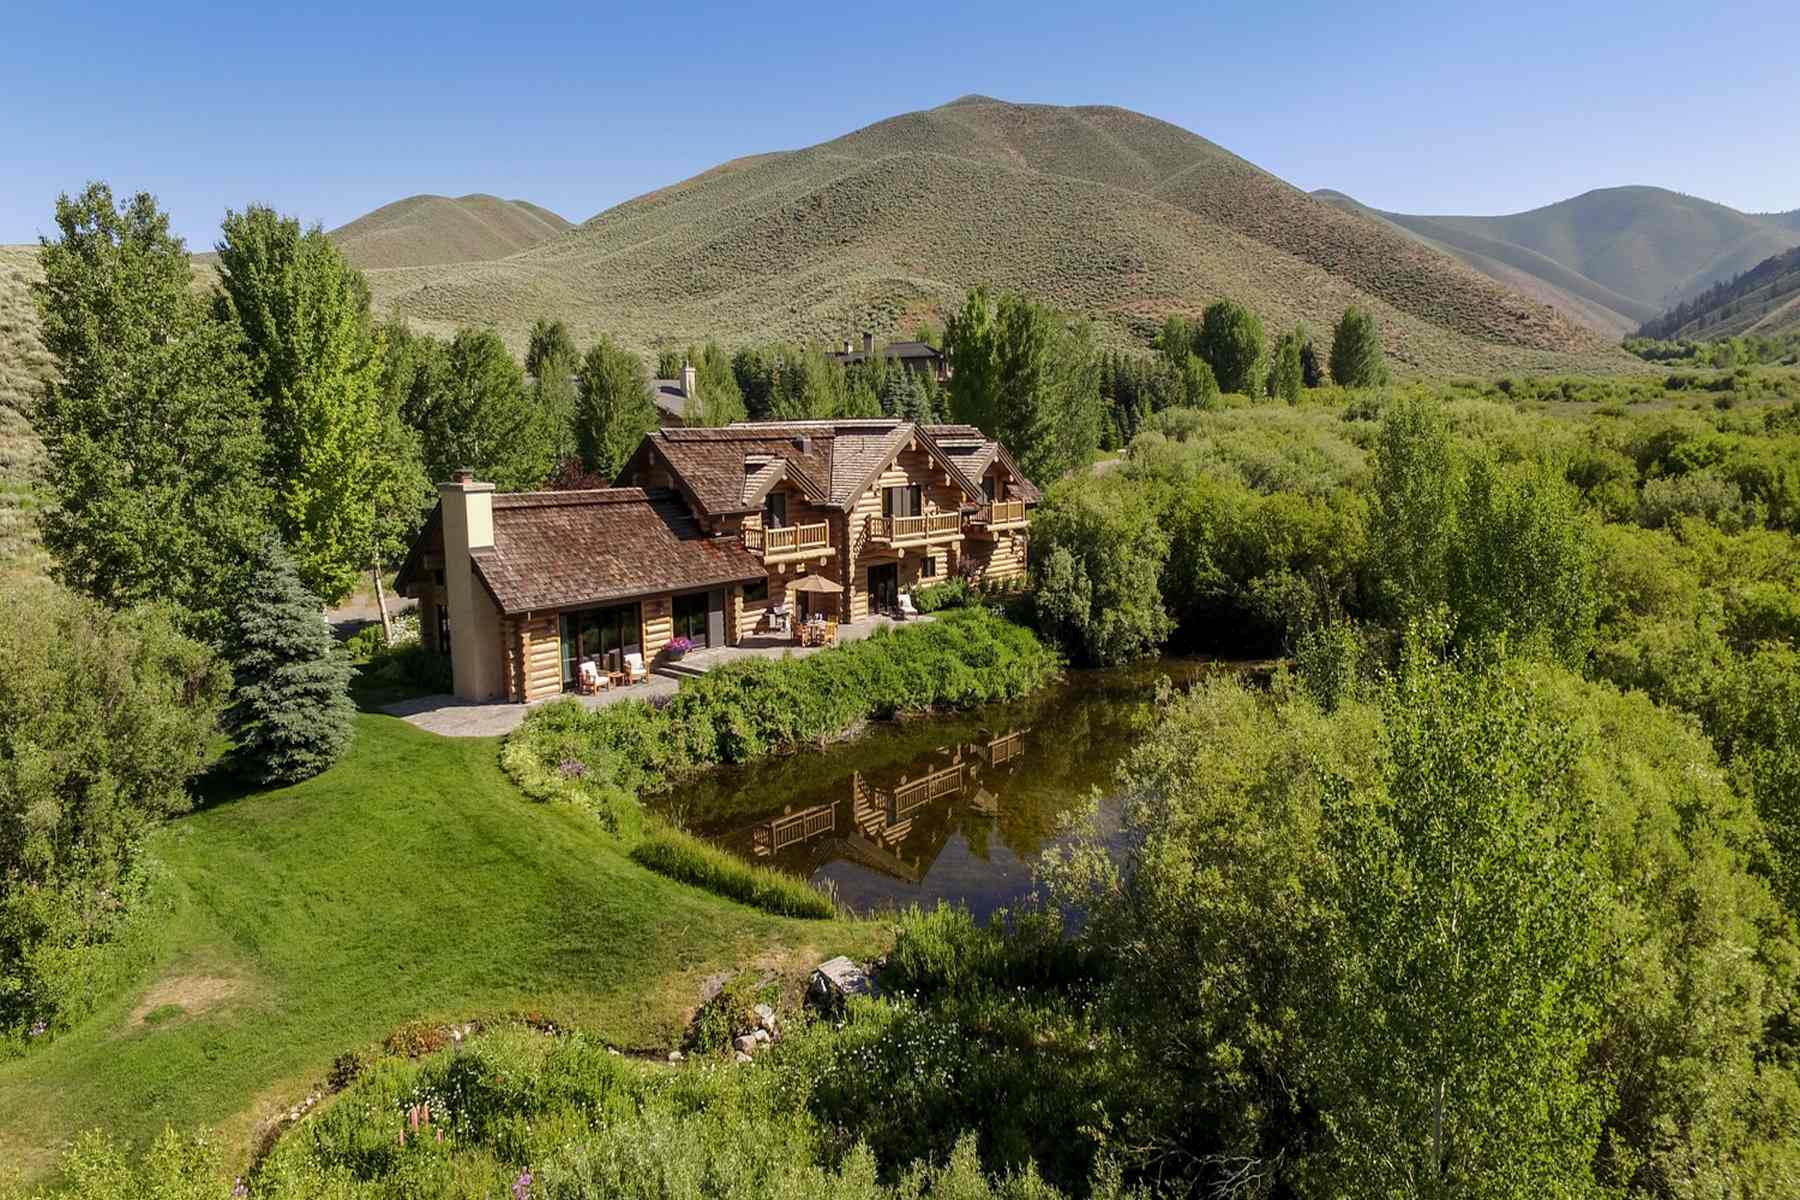 Maison unifamiliale pour l Vente à Waterfront Lodge-Style Sun Valley Home 104 Silver Queen Dr Elkhorn, Sun Valley, Idaho, 83353 États-Unis